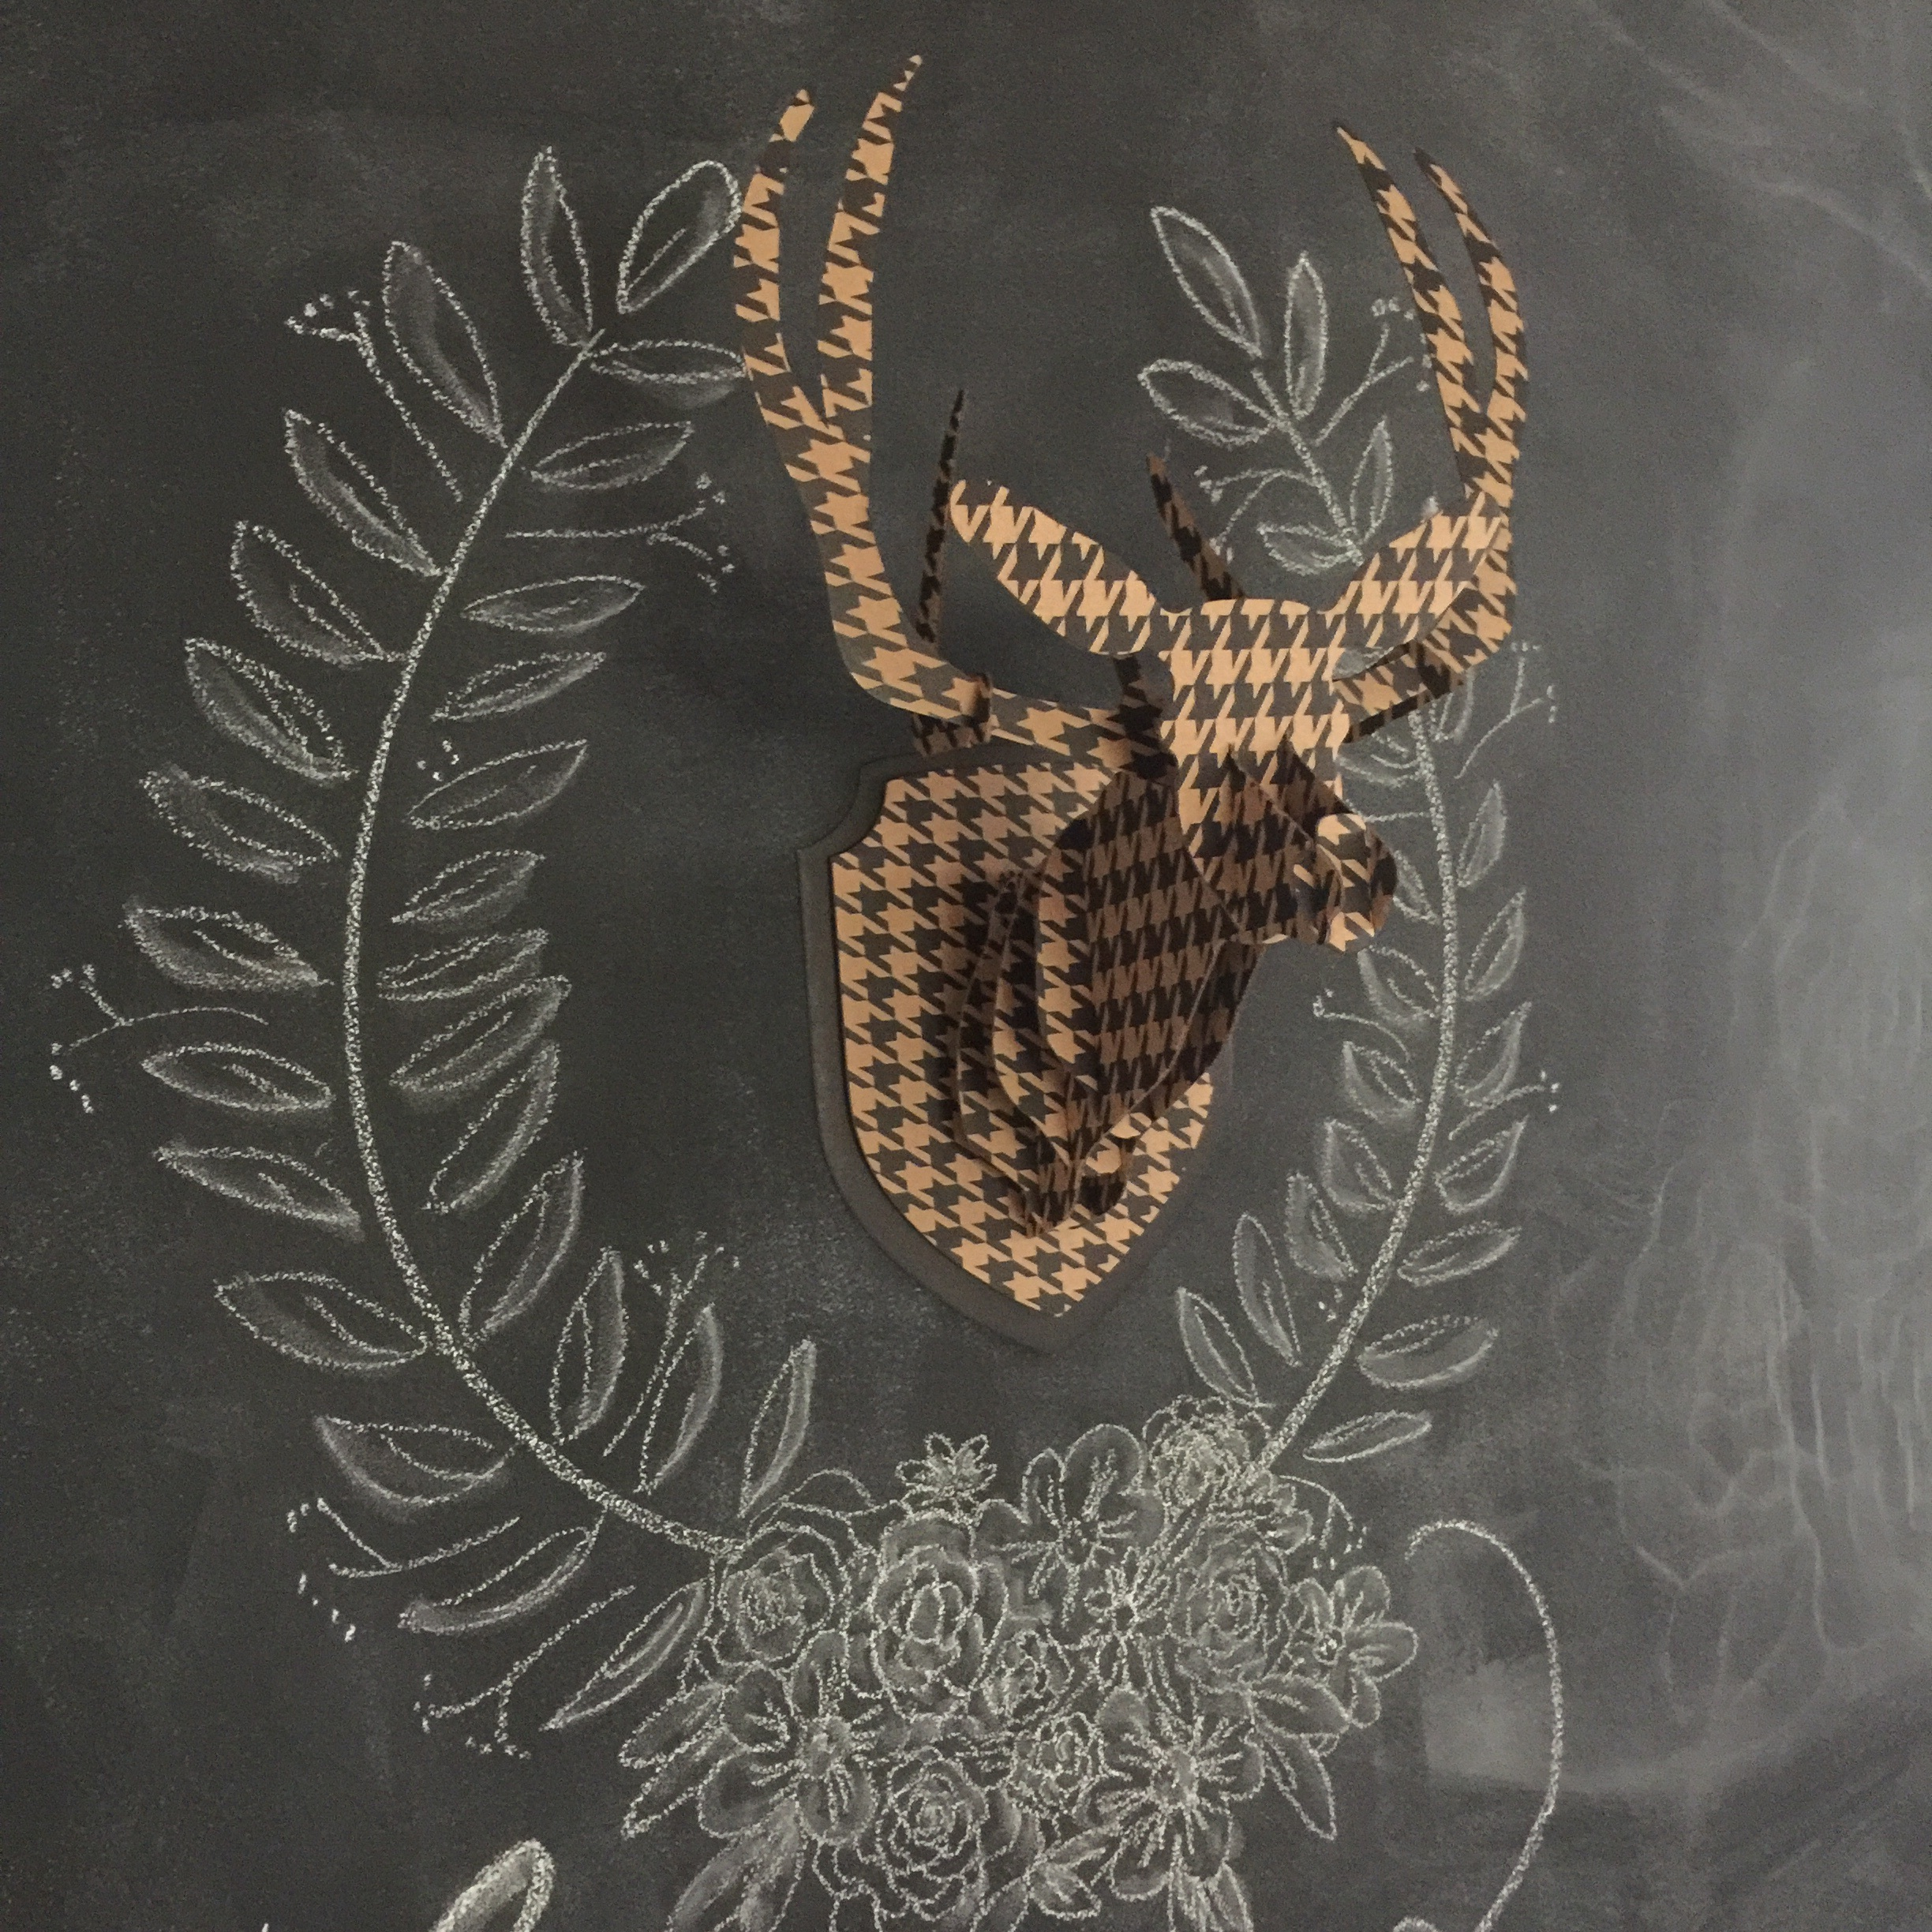 Chalk decor for Christmas. I miss this stag head - I would have loved to keep it up all year long!